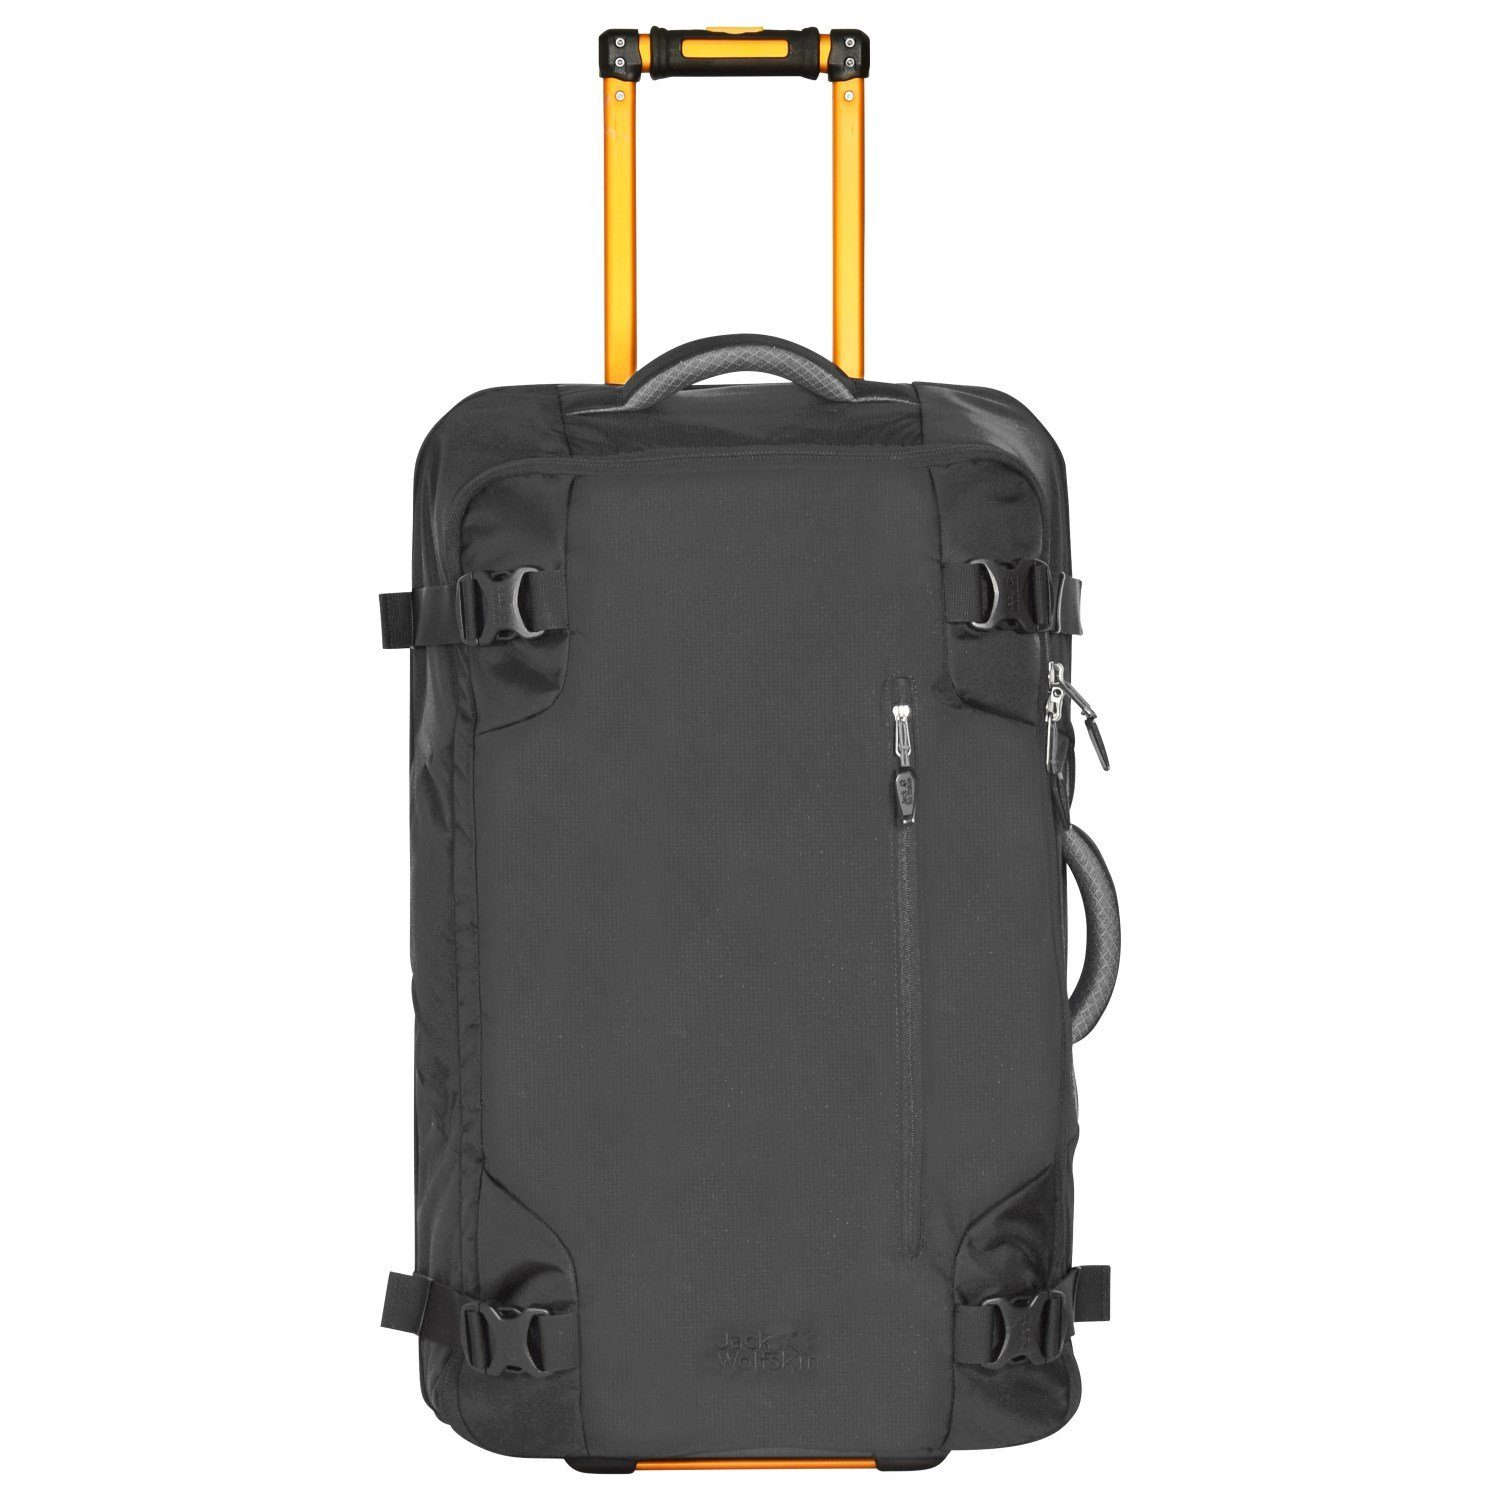 Jack Wolfskin Travel Gear Railman 80 2-Rollen Trolley 74 cm